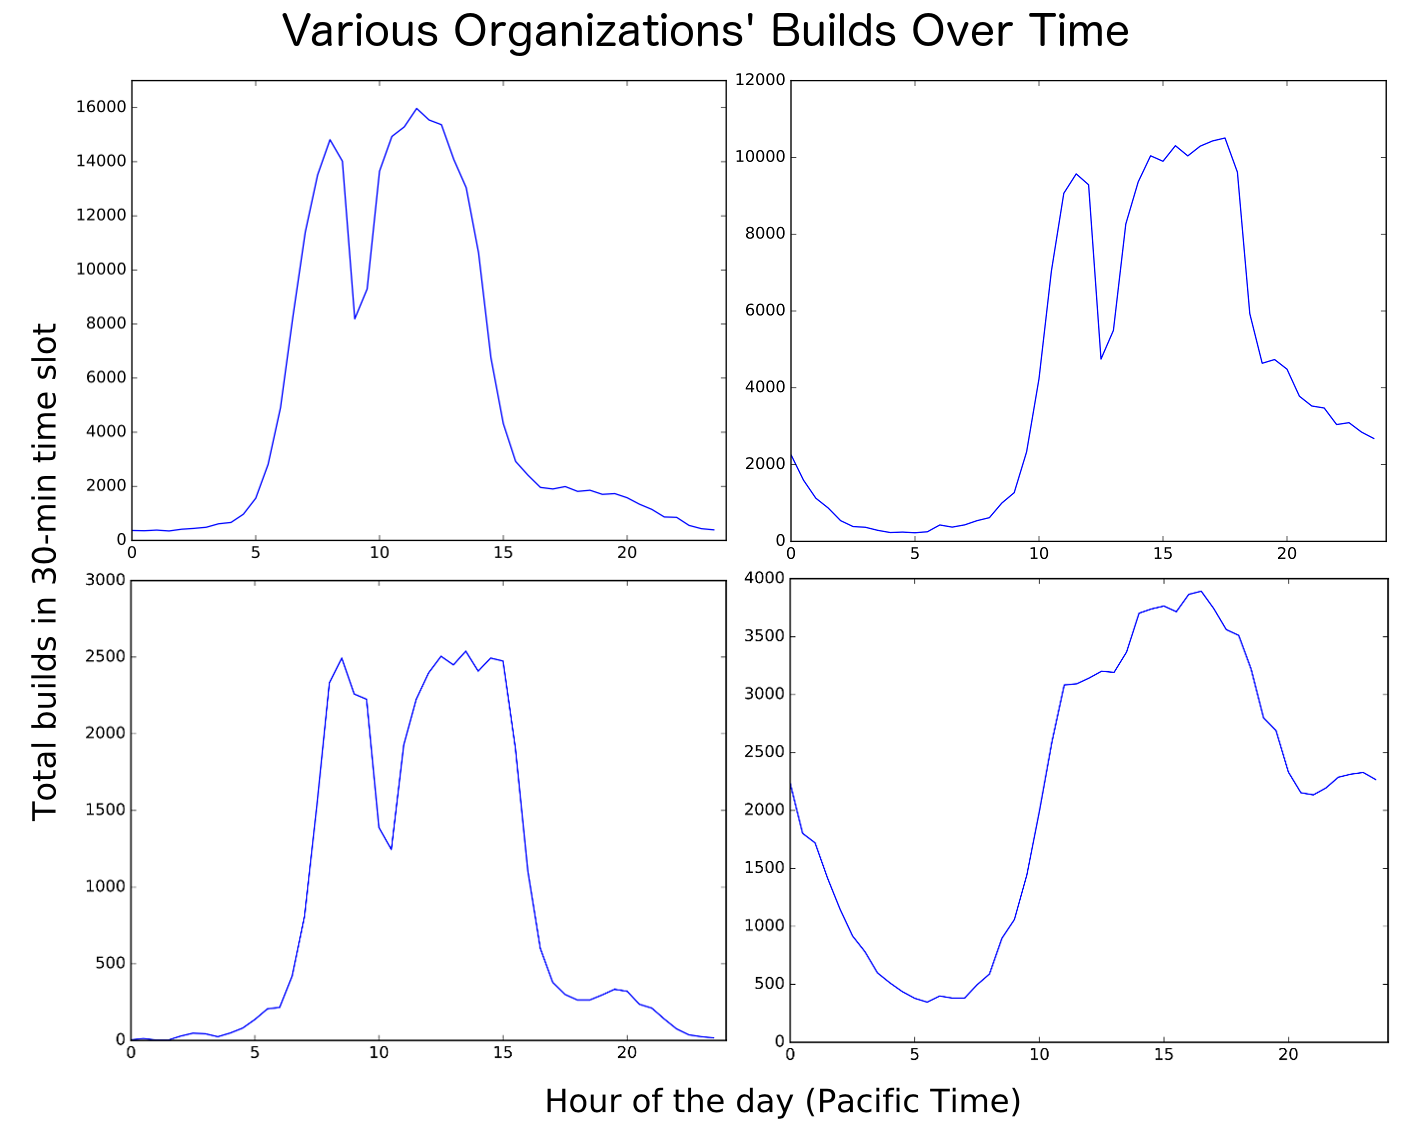 builds over time for various organizations